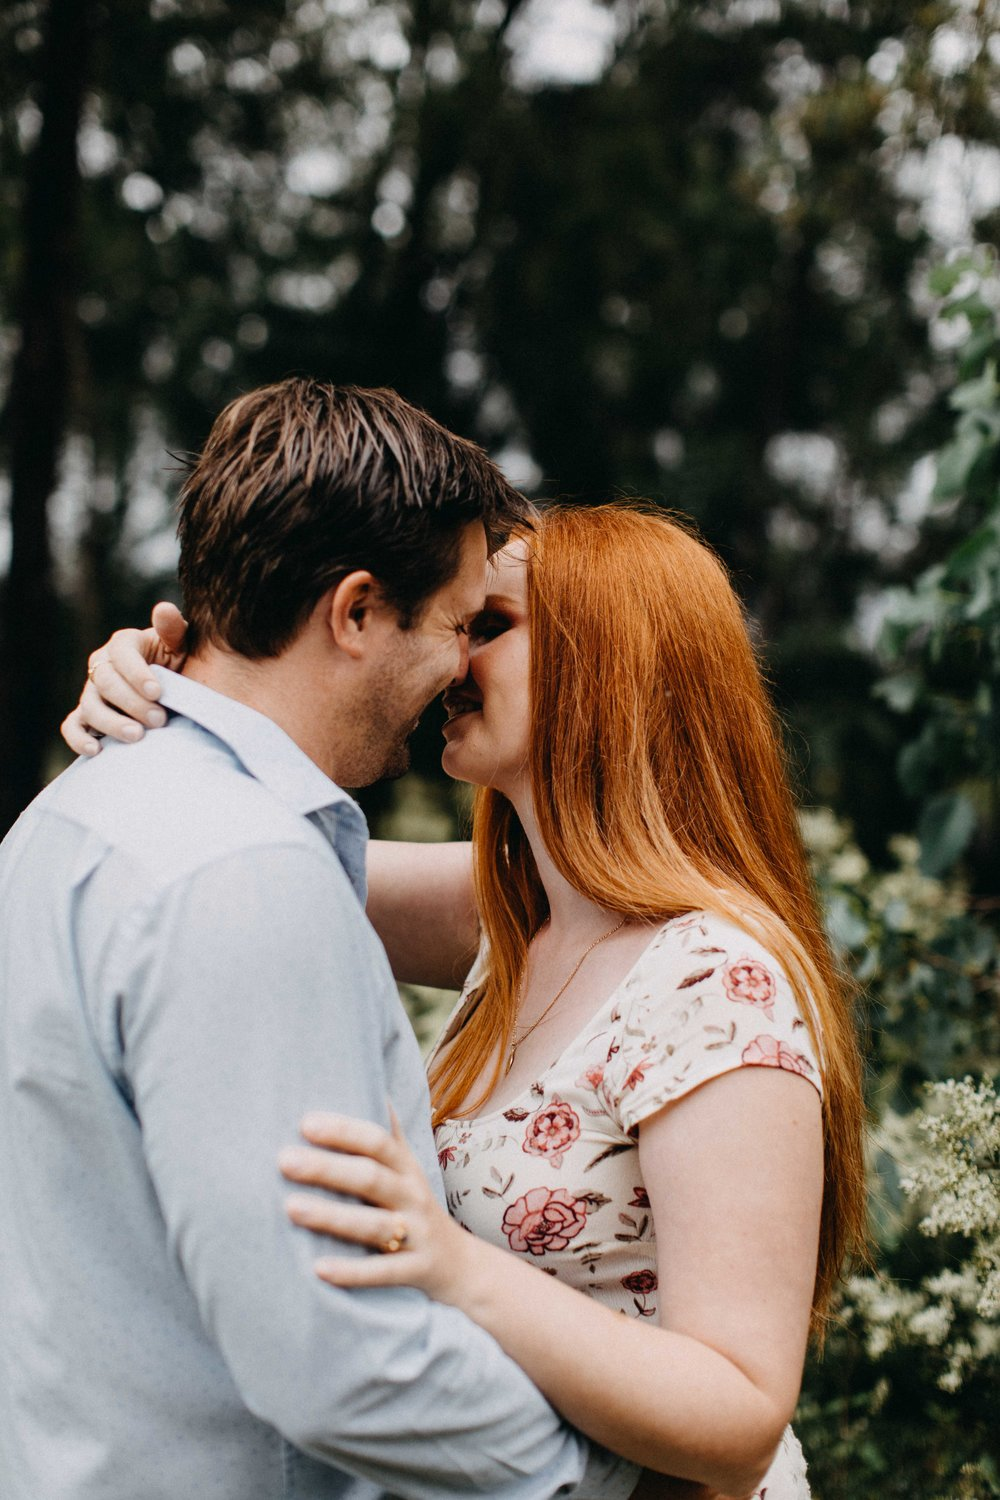 camden-engagement-session-wollondilly-photography-nadine-bernard-11.jpg